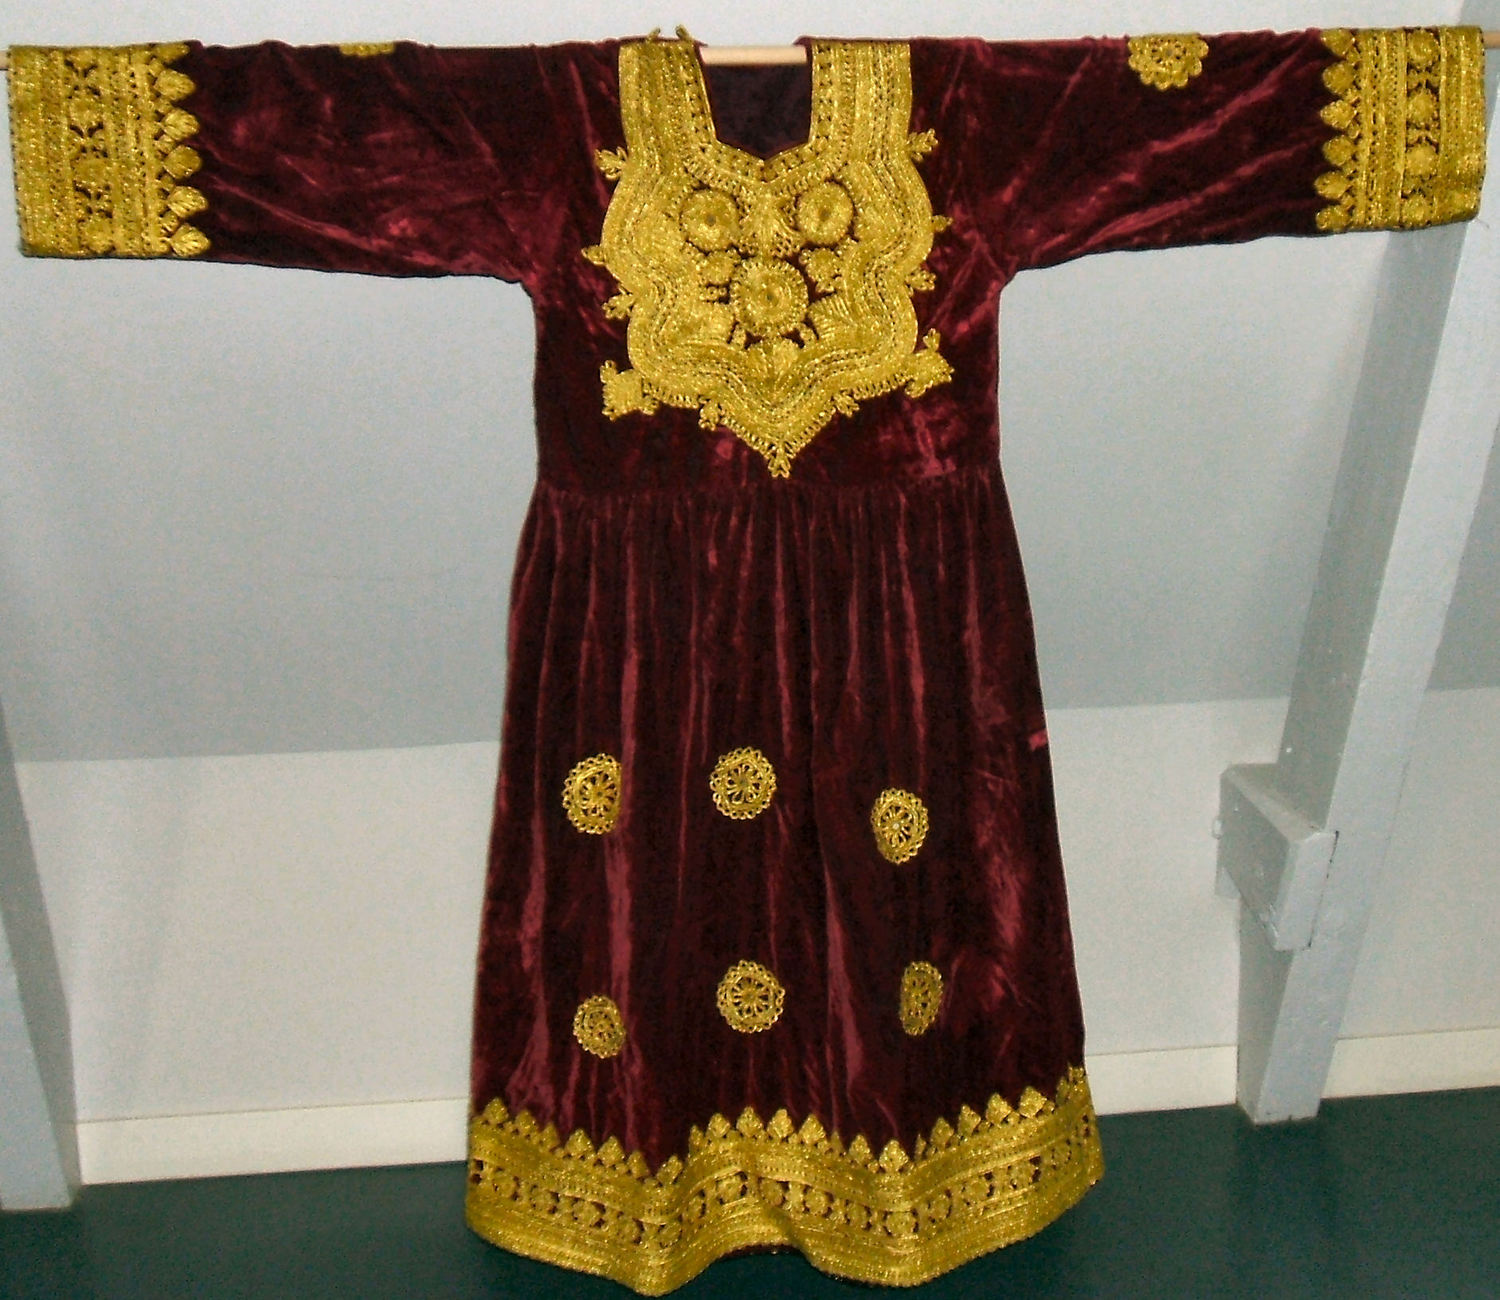 Pashtun dress. TRC 2007.0273b. Factory woven ground cloth with applied metal thread braid (passementerie).